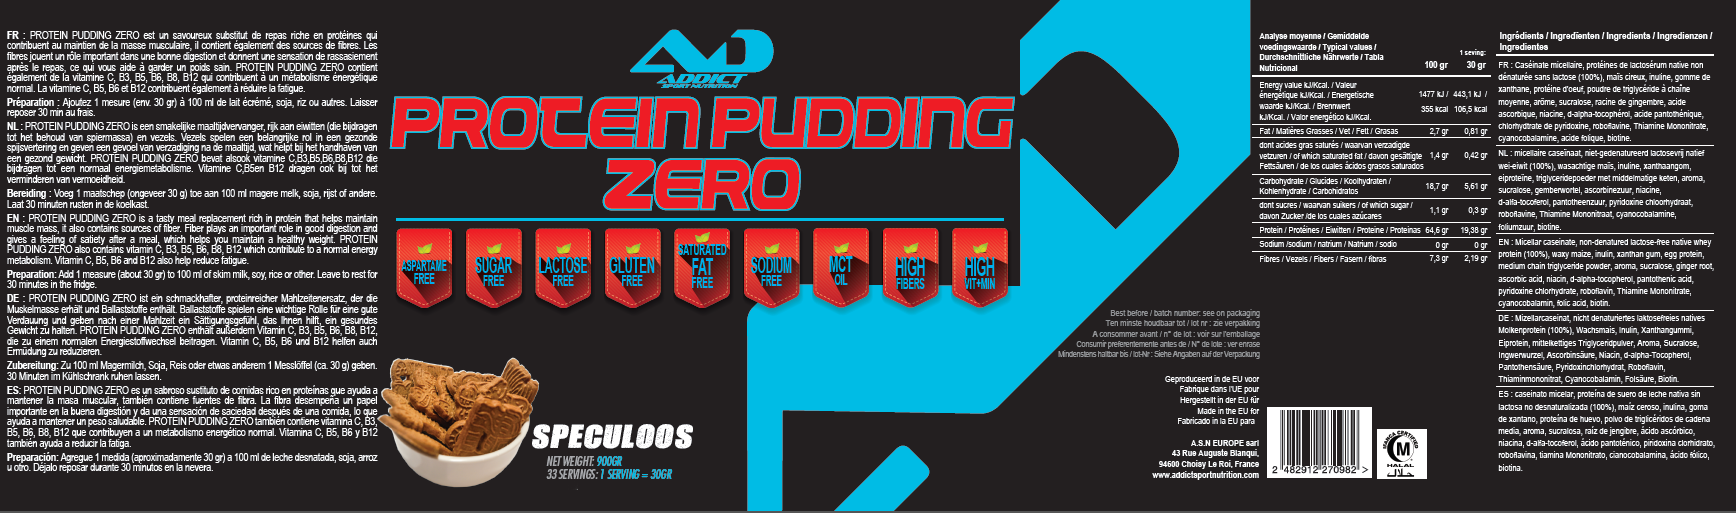 Pudding-fiche.png